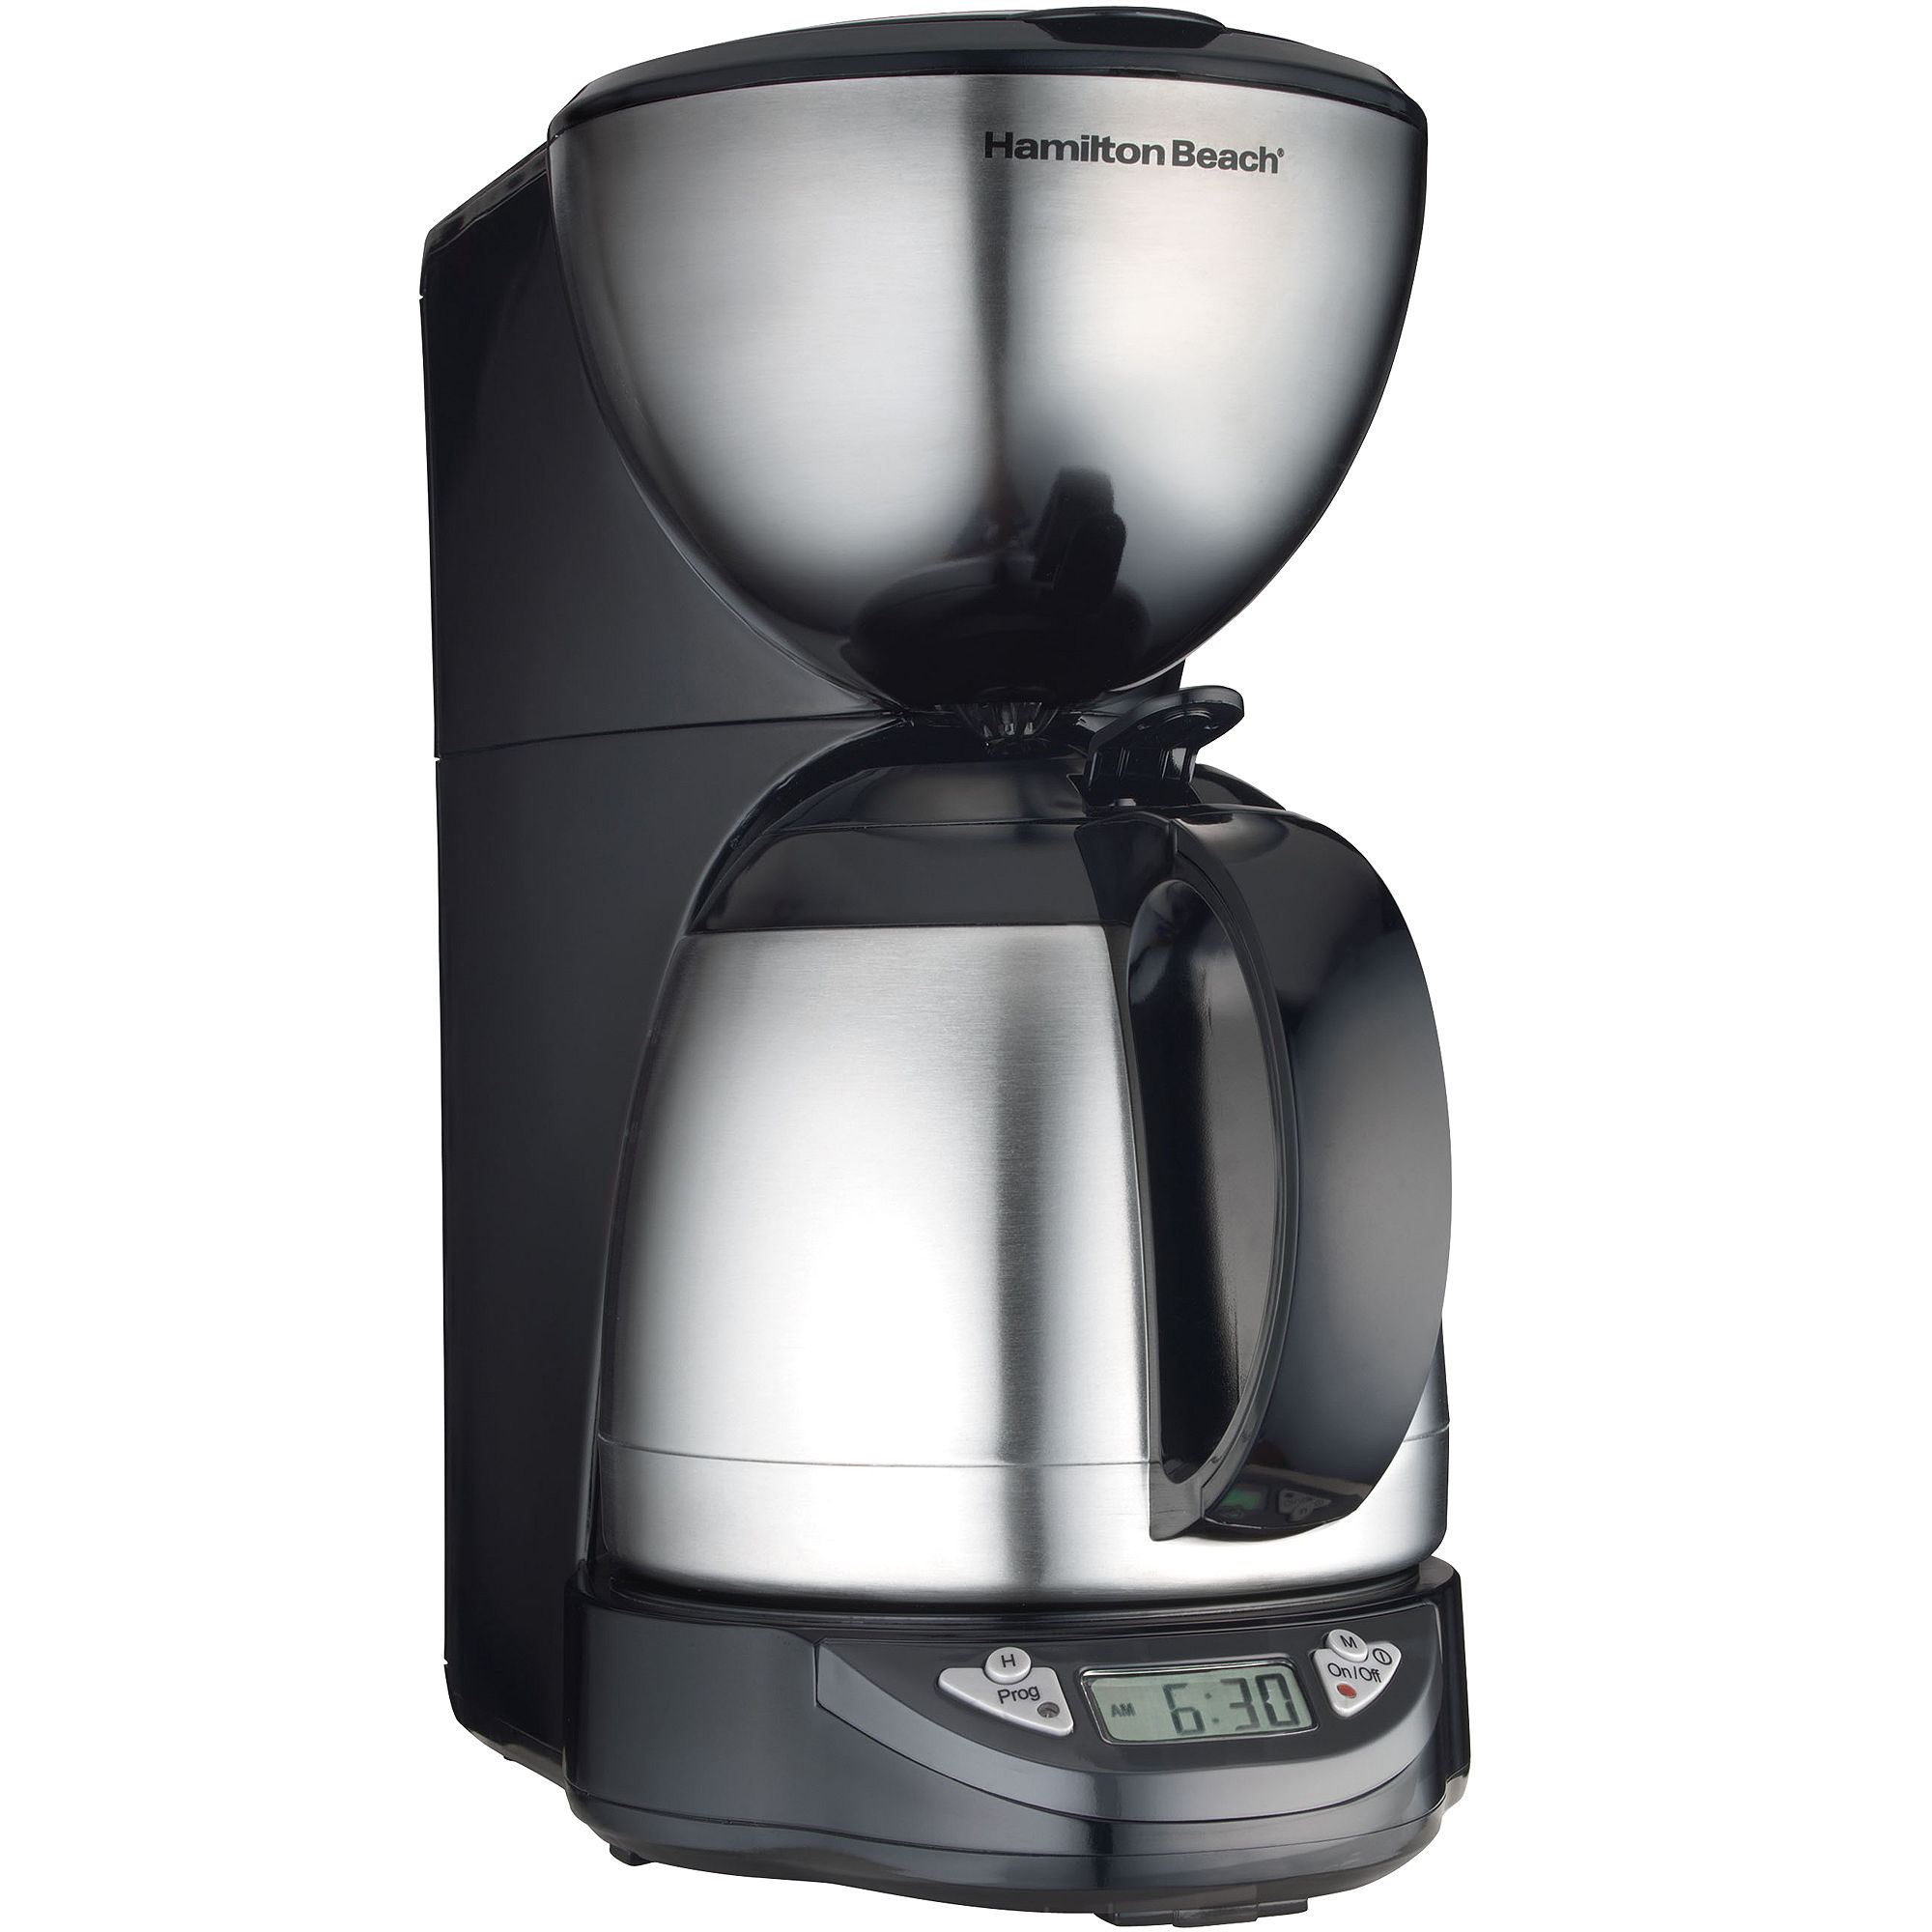 Hamilton Beach 10-Cup Programmable Thermal Coffee Maker